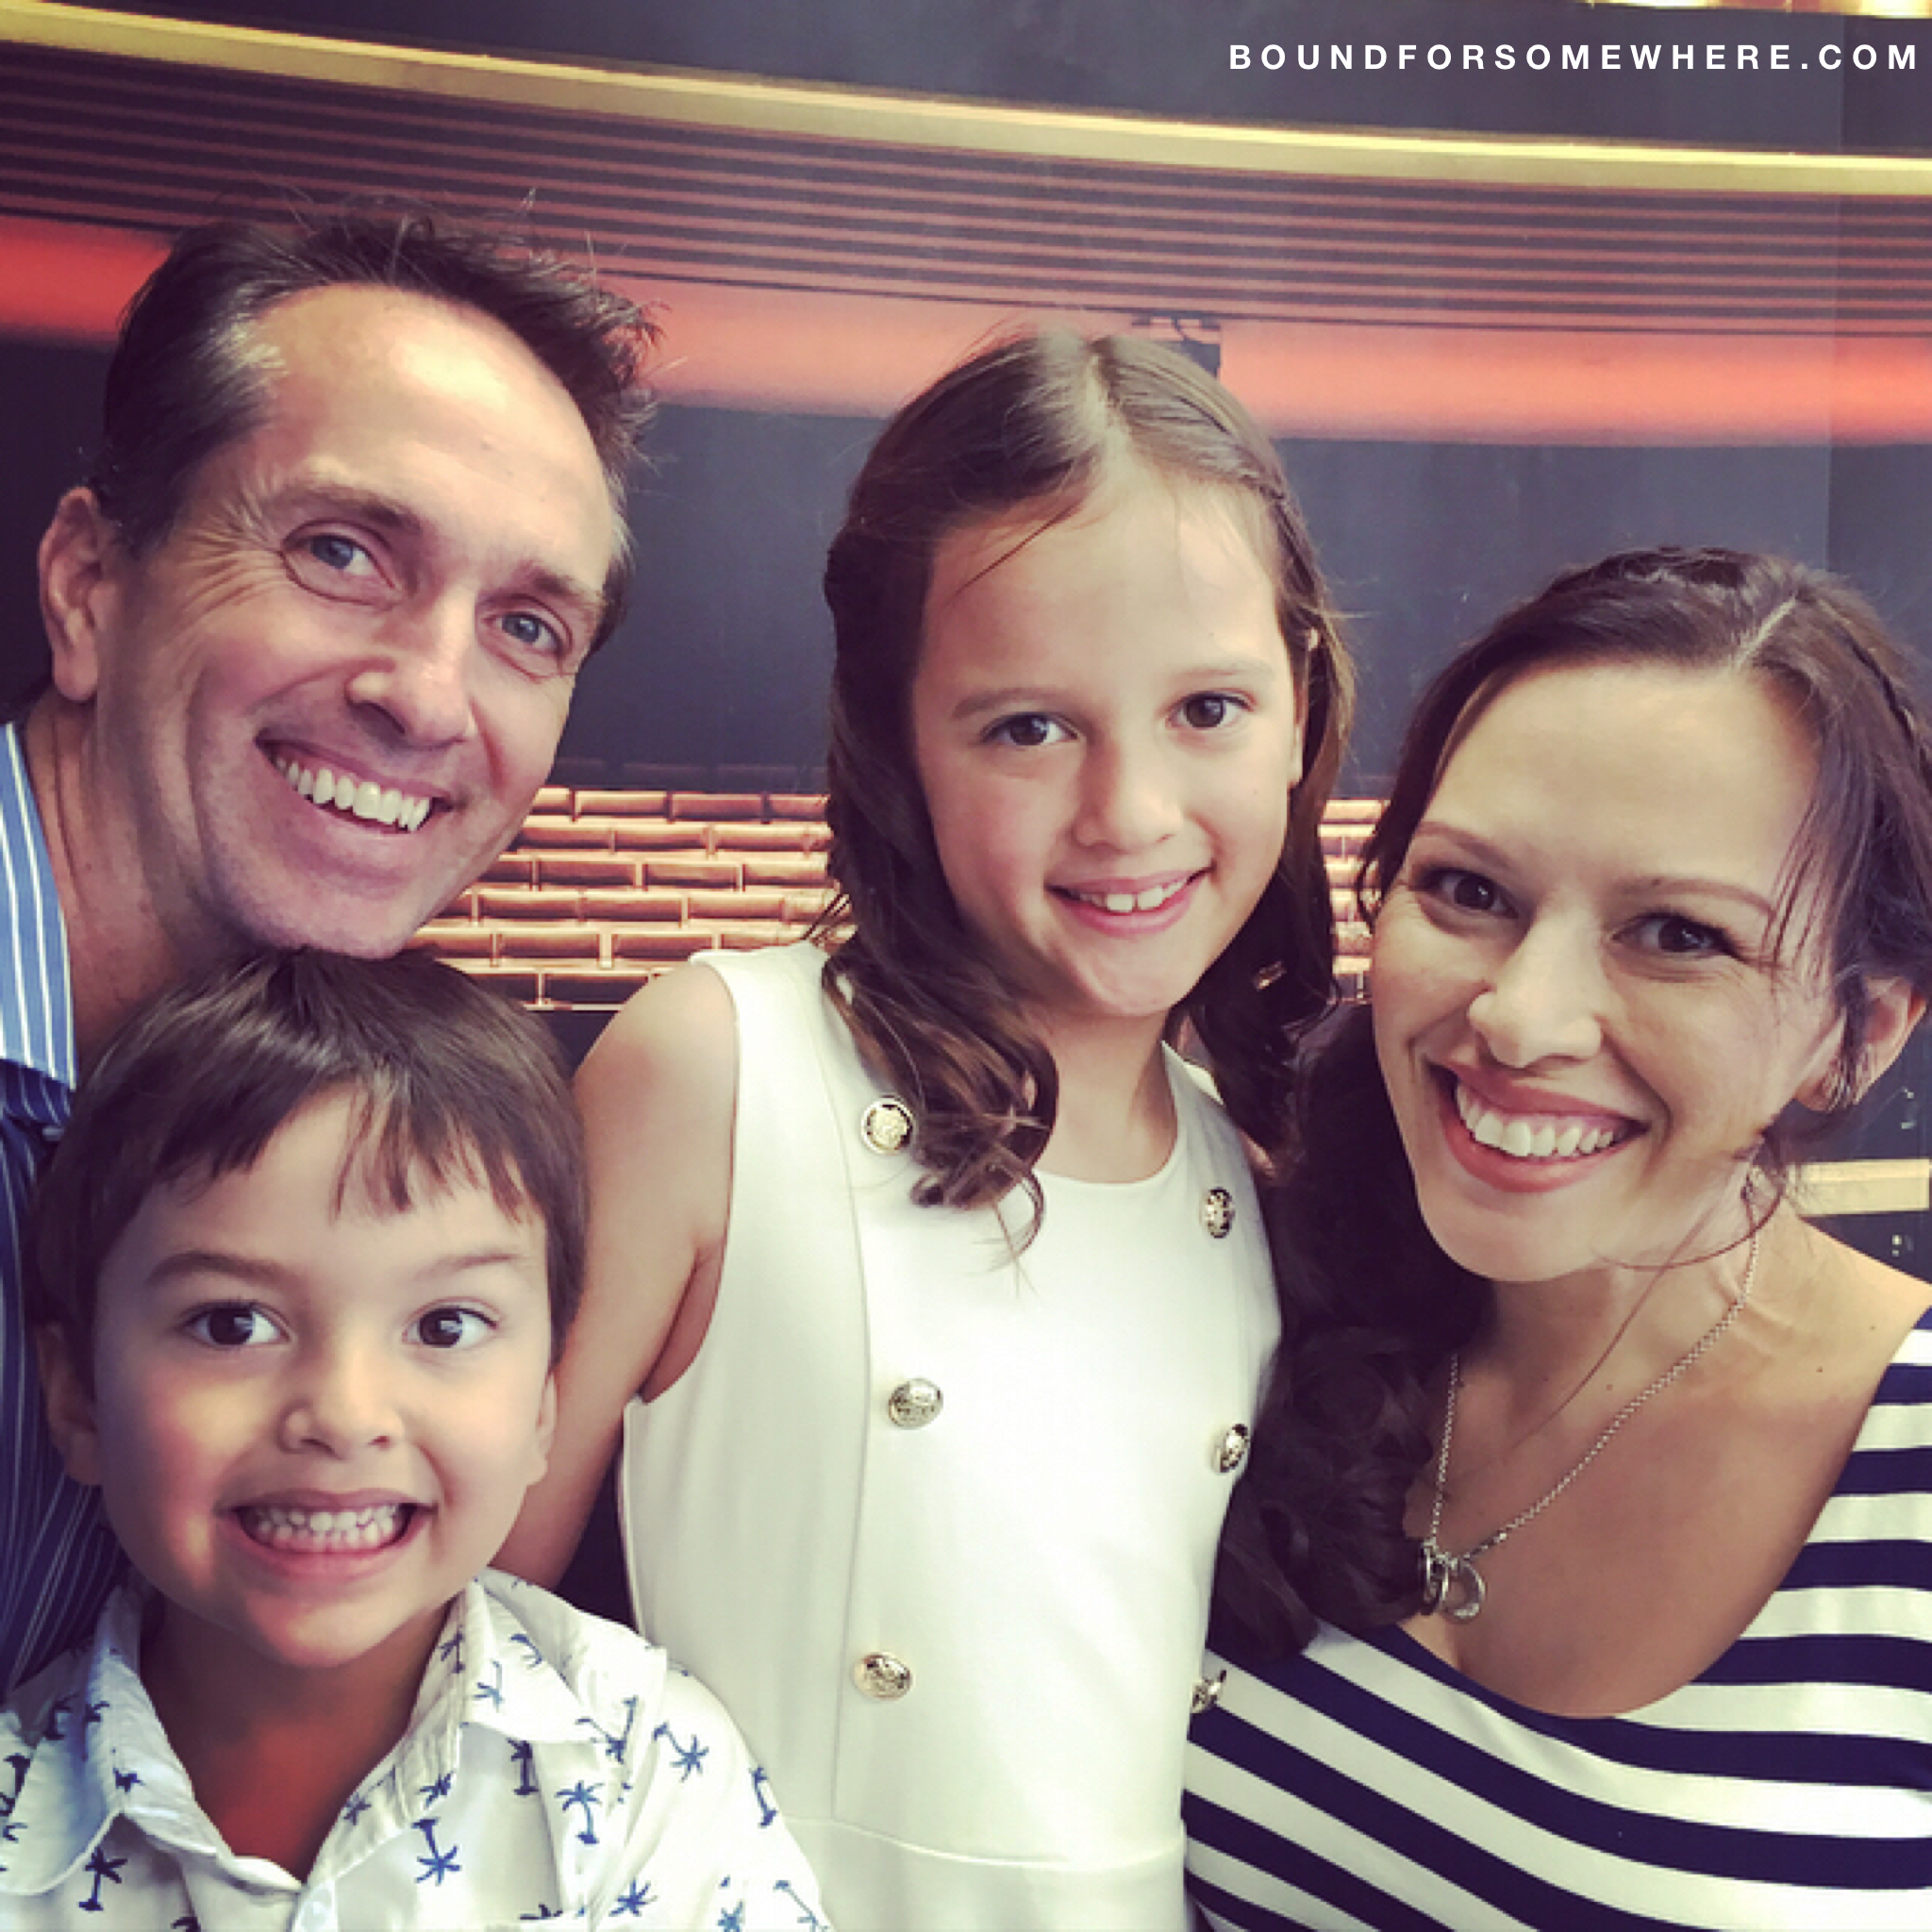 A fun packed weekend away for the family in Brisbane